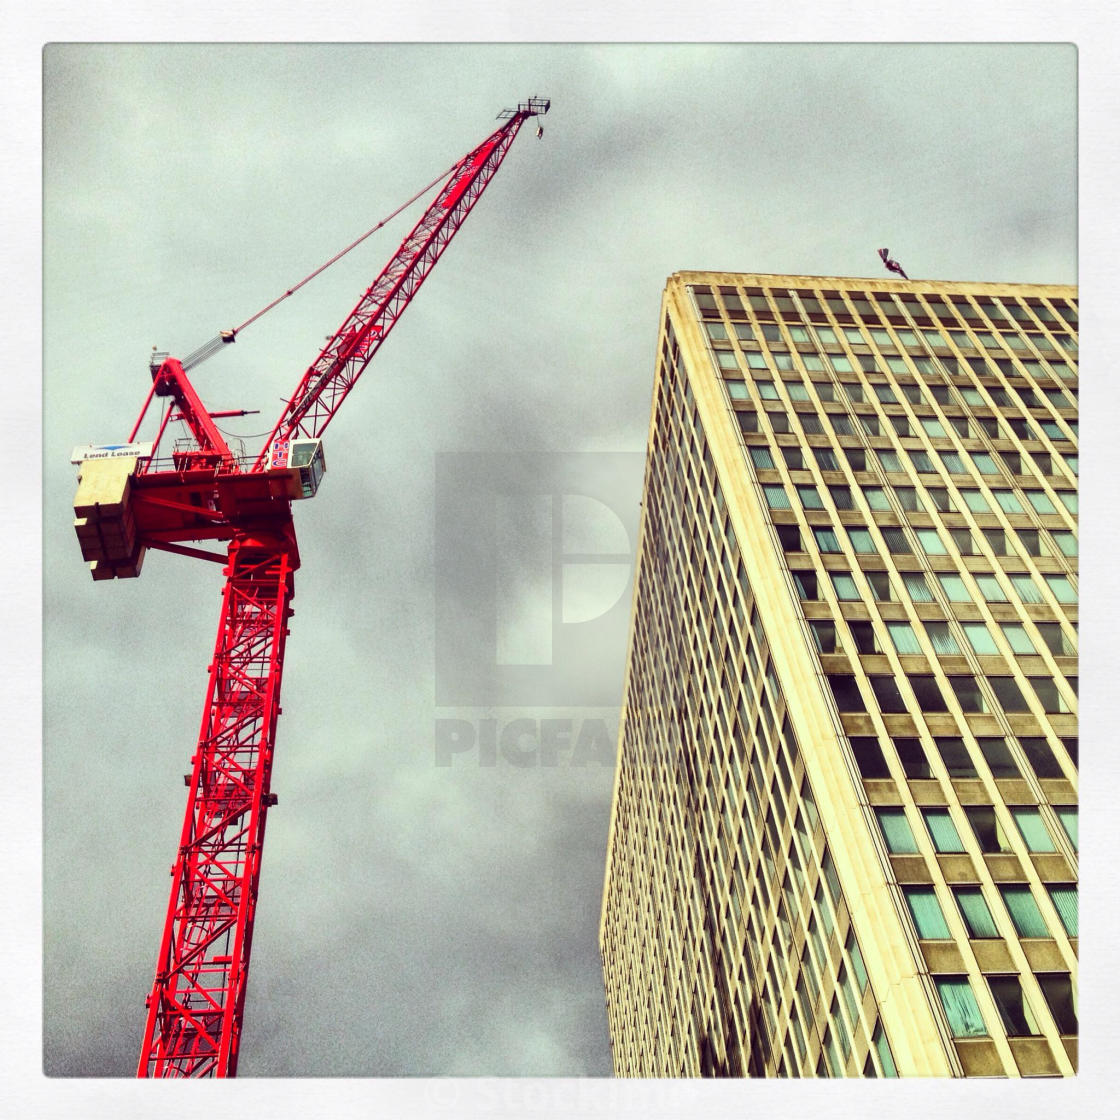 Crane on Victoria Street - License, download or print for